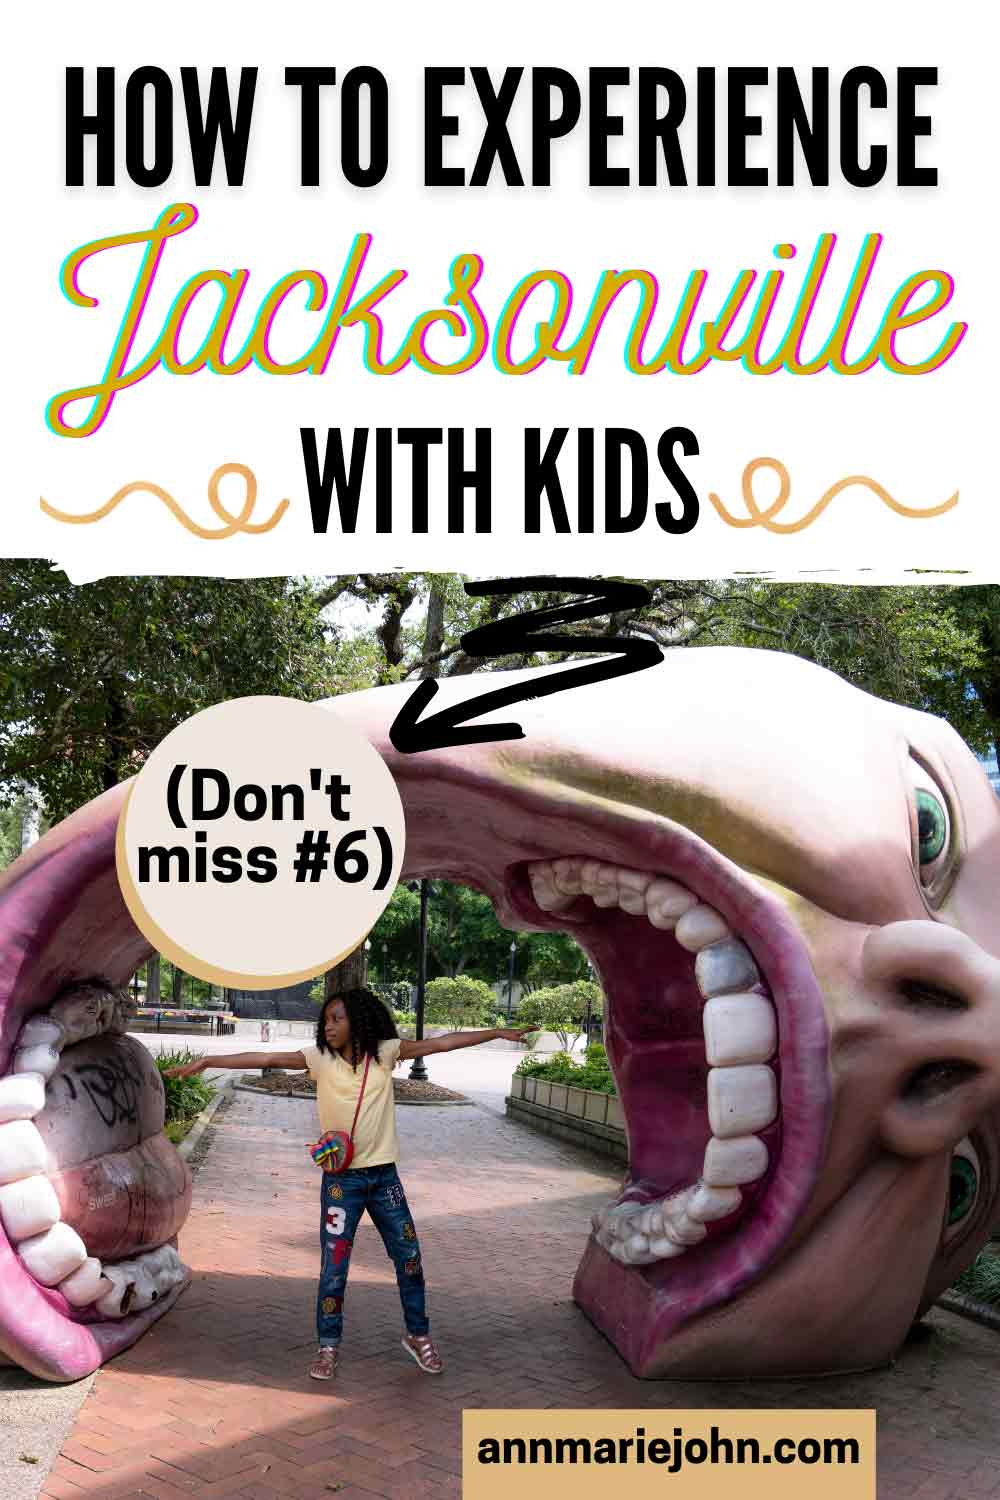 How to Experience Jacksonville with Kids